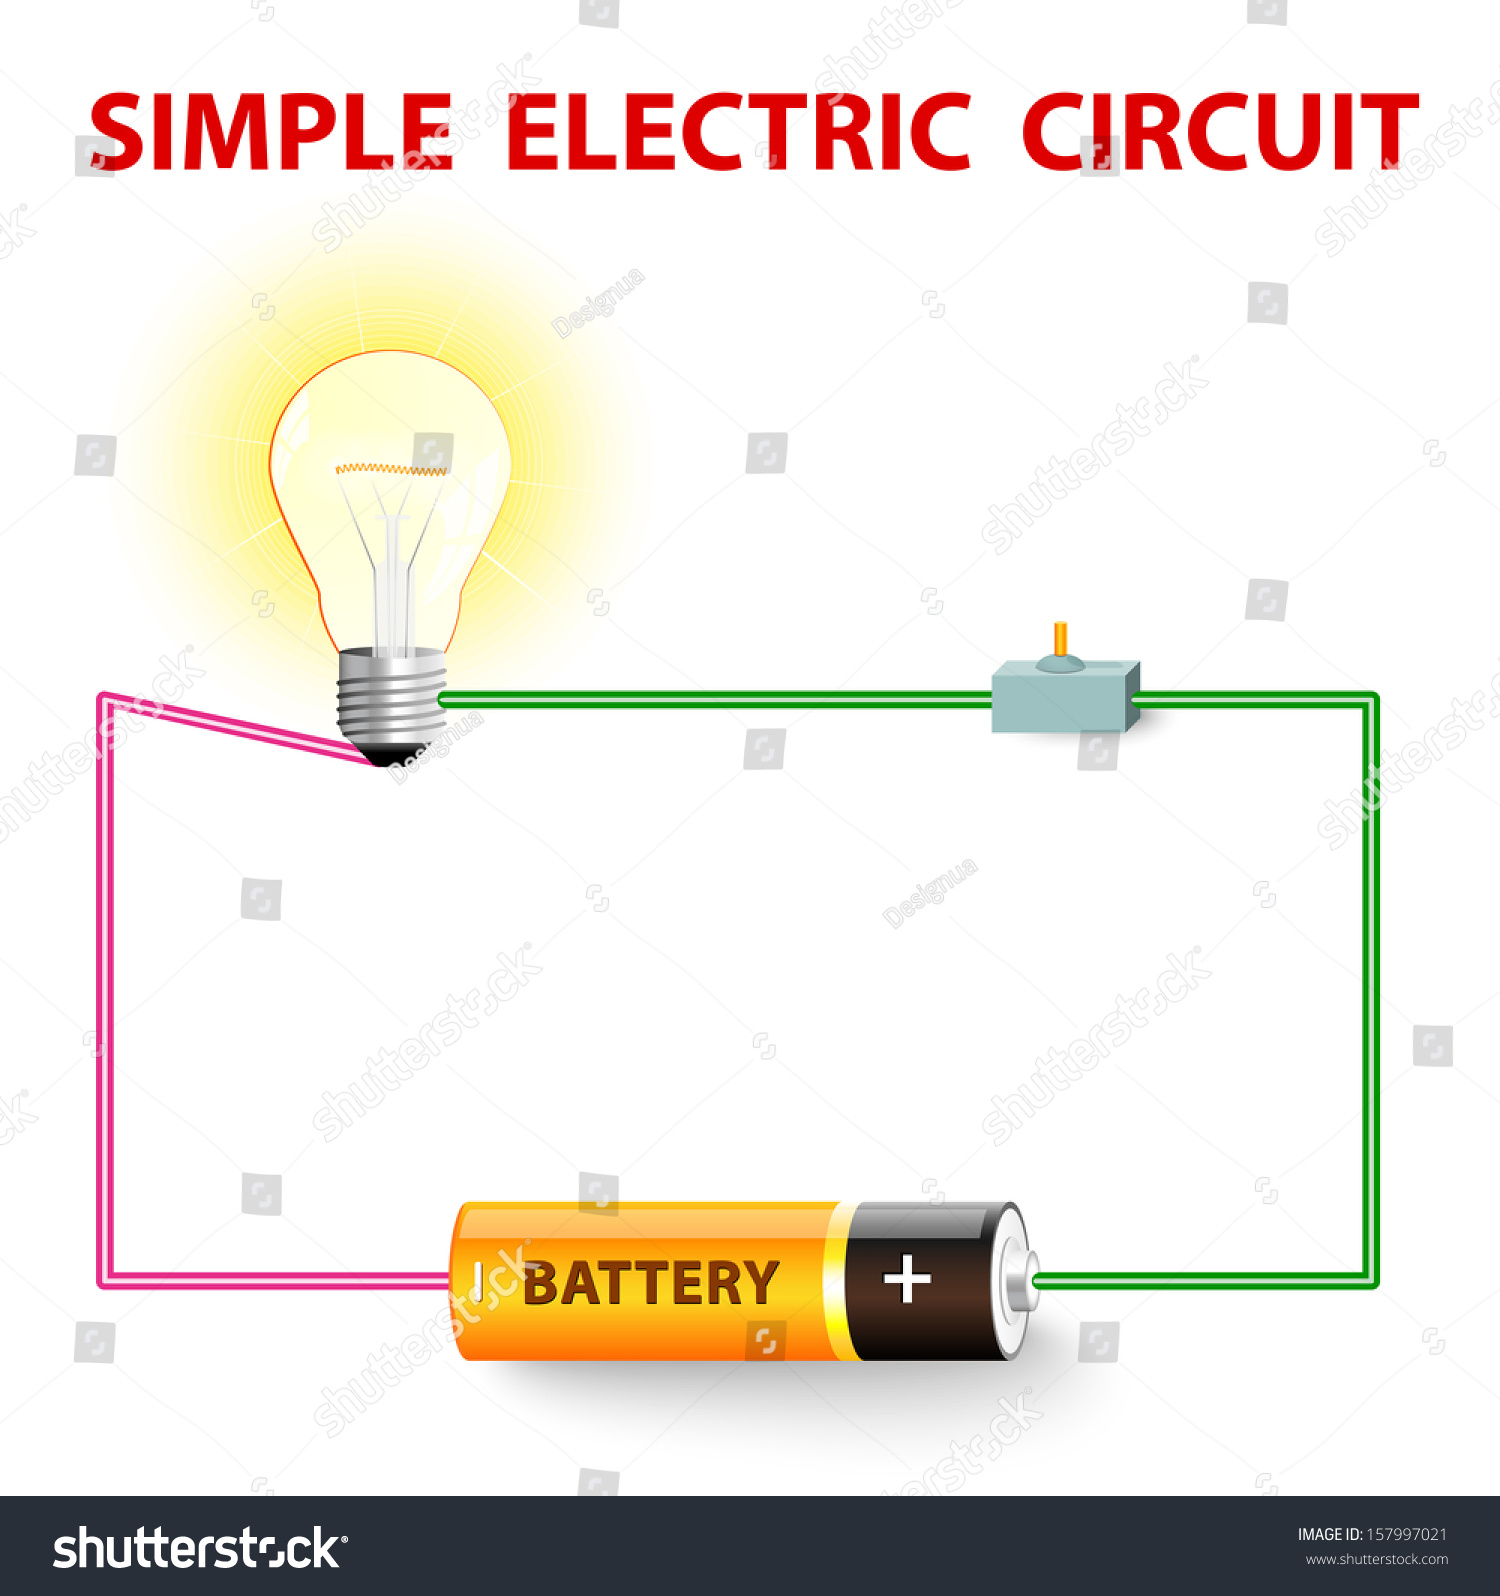 Diagram Of How To Connect A Light Bulb To A Battery